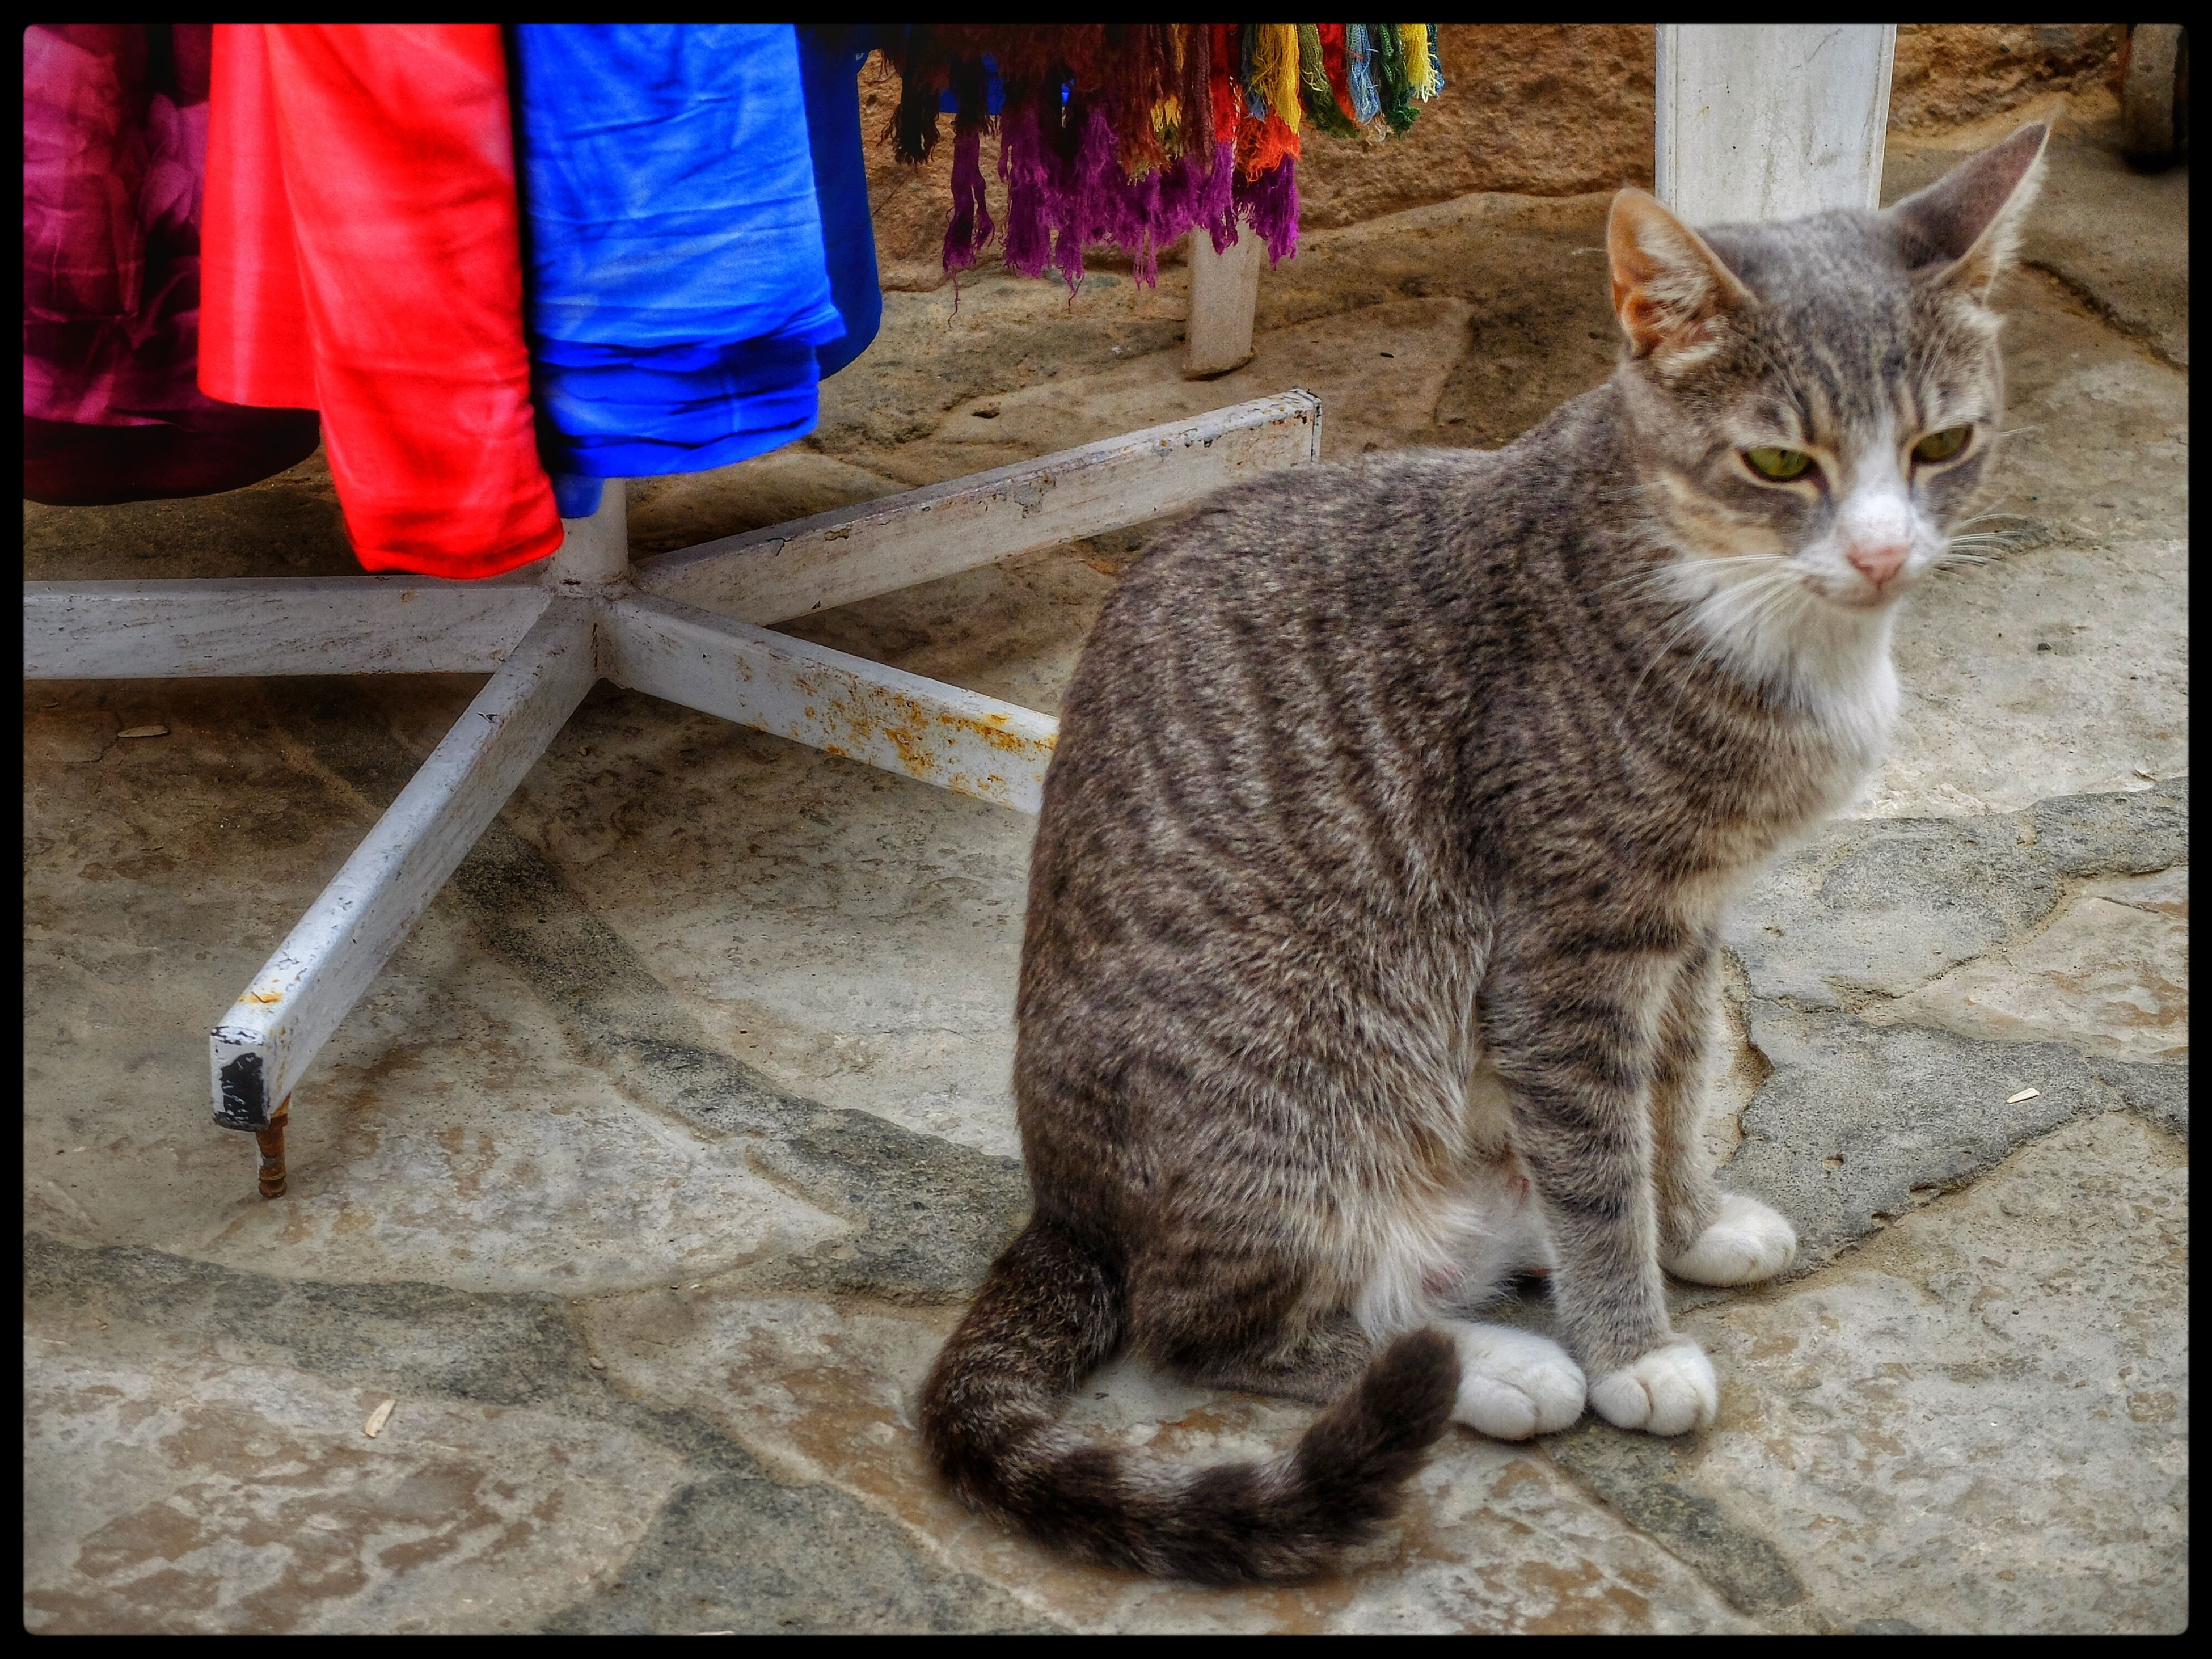 domestic animals, pets, animal themes, one animal, mammal, transfer print, domestic cat, cat, auto post production filter, standing, full length, low section, men, walking, feline, lifestyles, person, pet owner